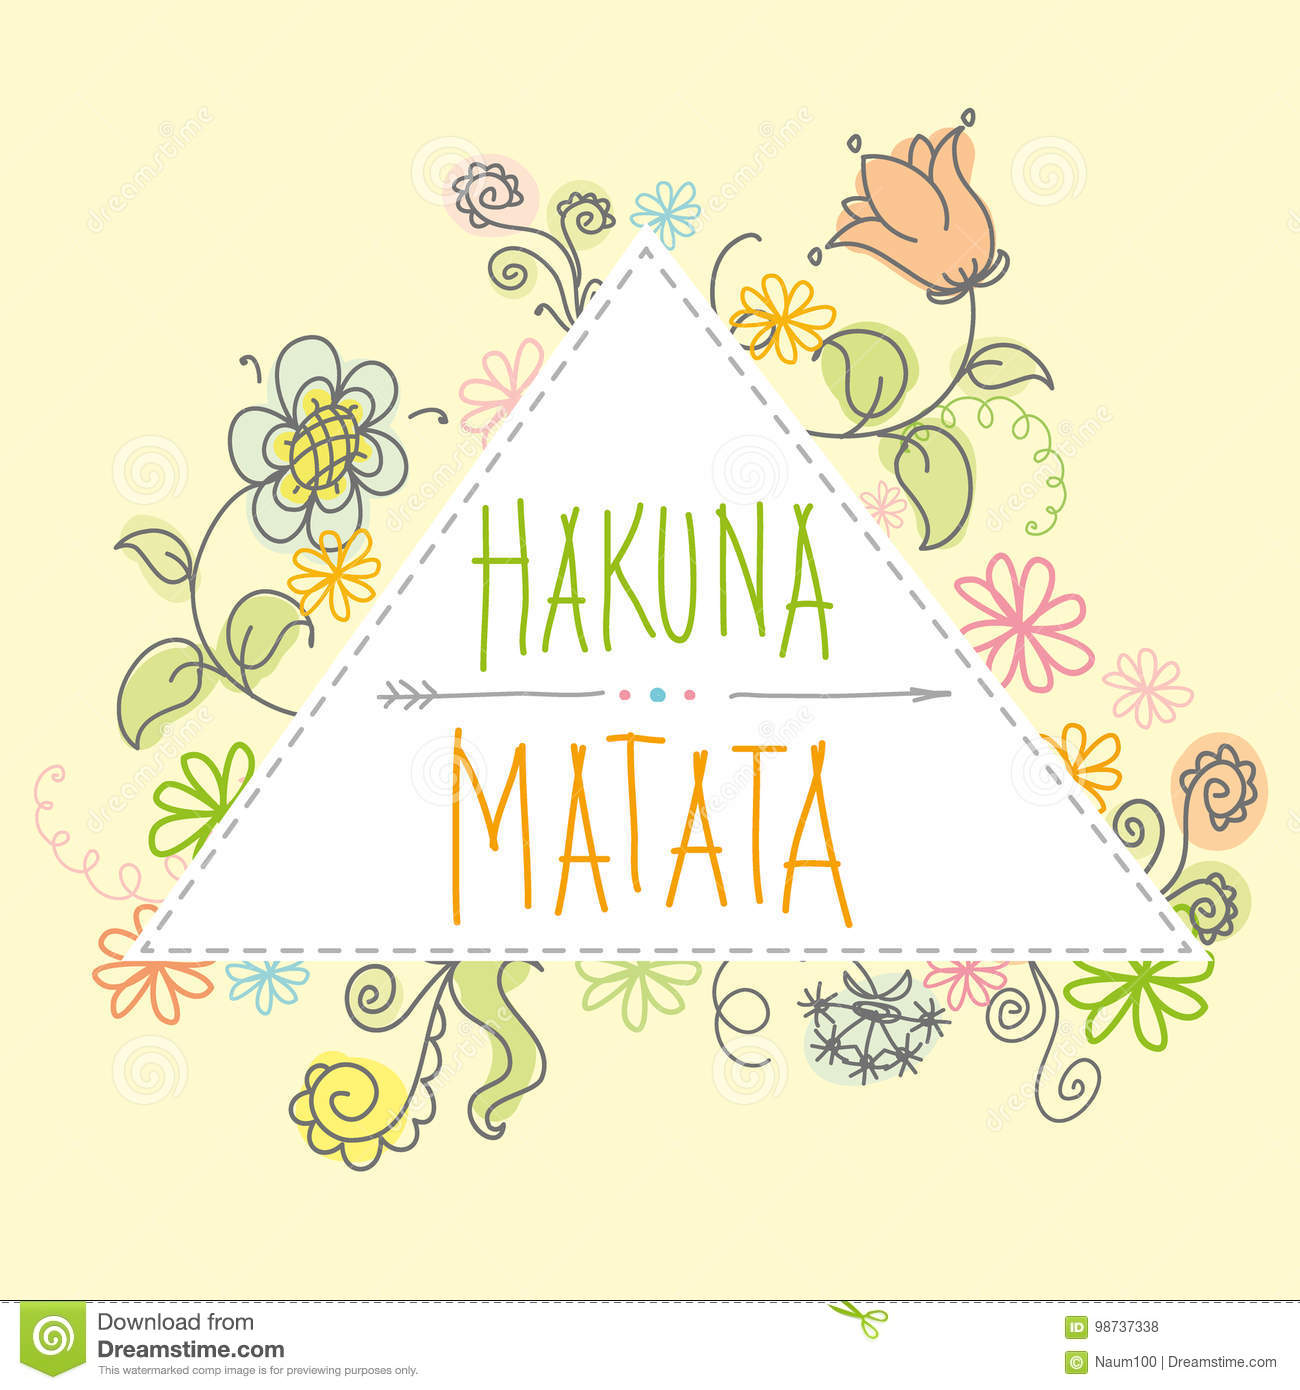 Hakuna Matata No Worrieslettering With Floral Elements Stock